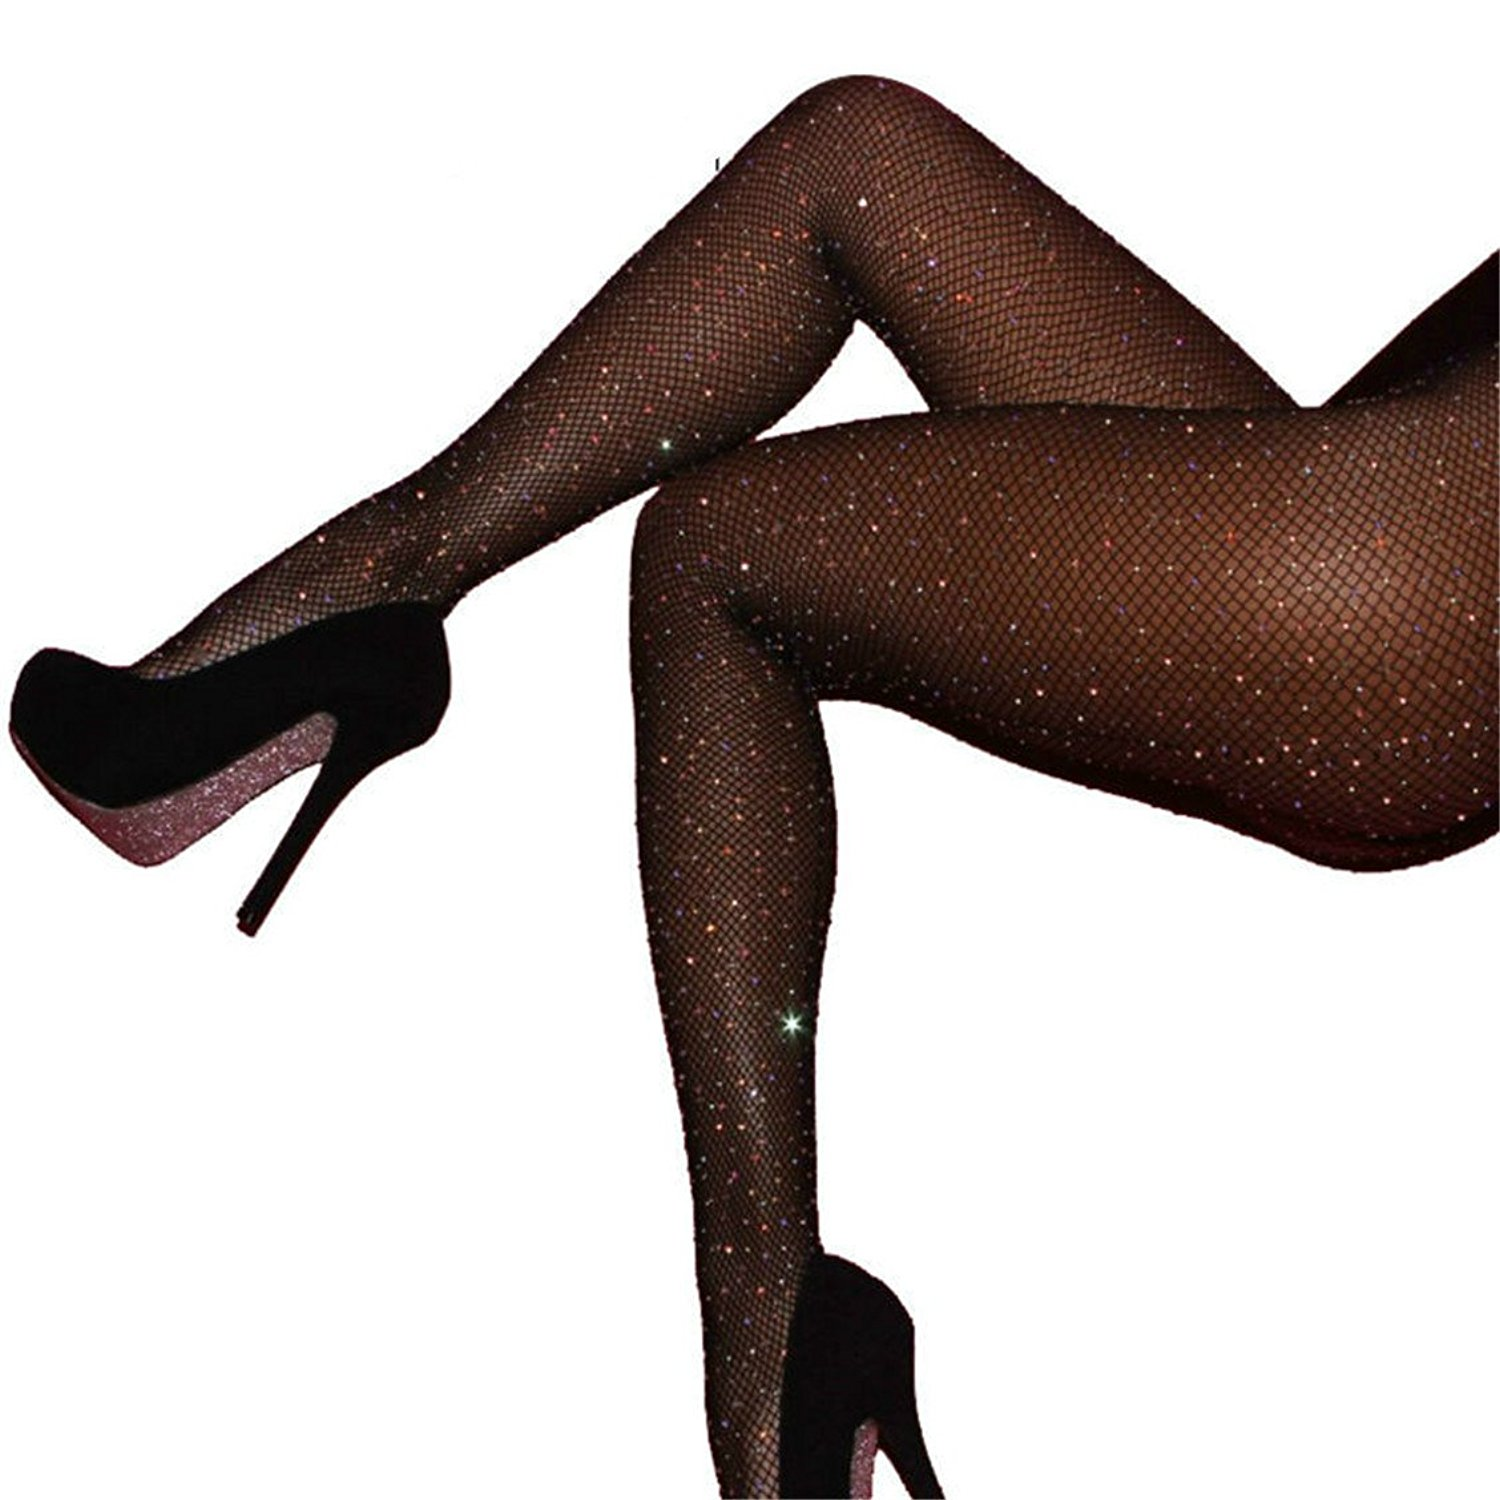 67221240719 ... Plus Size UK 14-22. Get Quotations · 2017 HOT NEW Shine Crystal Fishnet  Tights Pantyhose Stockings for Women Multi Color Diamonds Fish Net